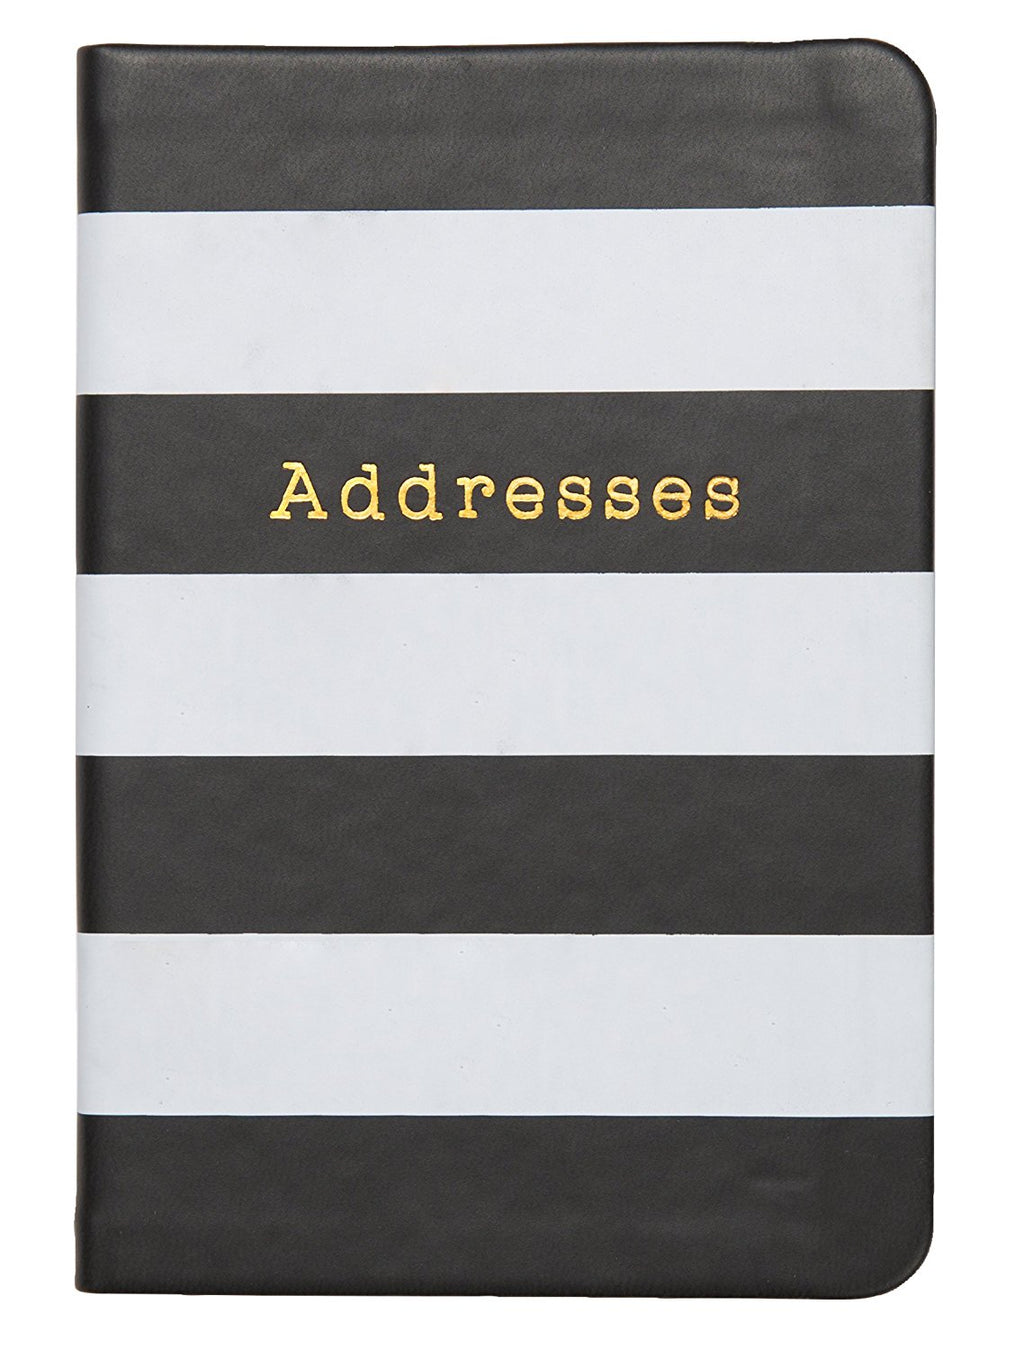 "C.R. Gibson Small Address Book, 192 Pages, Debossed Leatherette Cover, Storage Pocket, Monthly Pages, Measures 3.5"" x 5.5"" - Black & White Stripes"